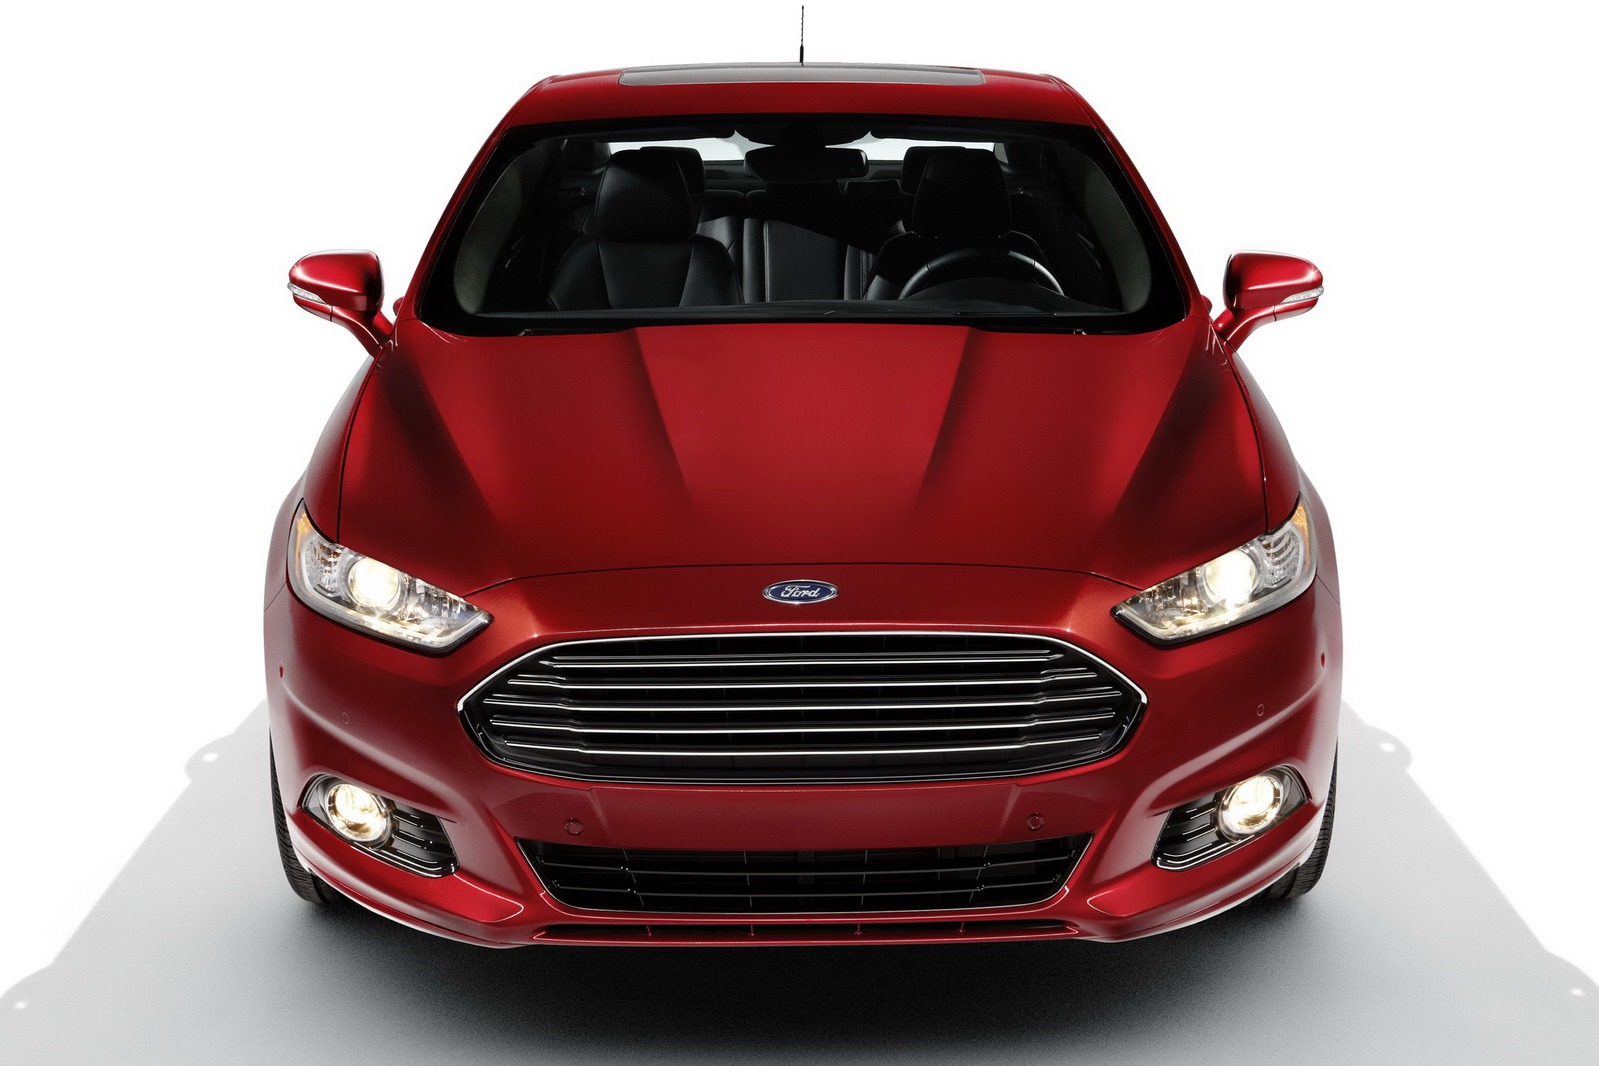 New Ford Fusion 2013 Price with hybrid and Plug-in hybrid model options